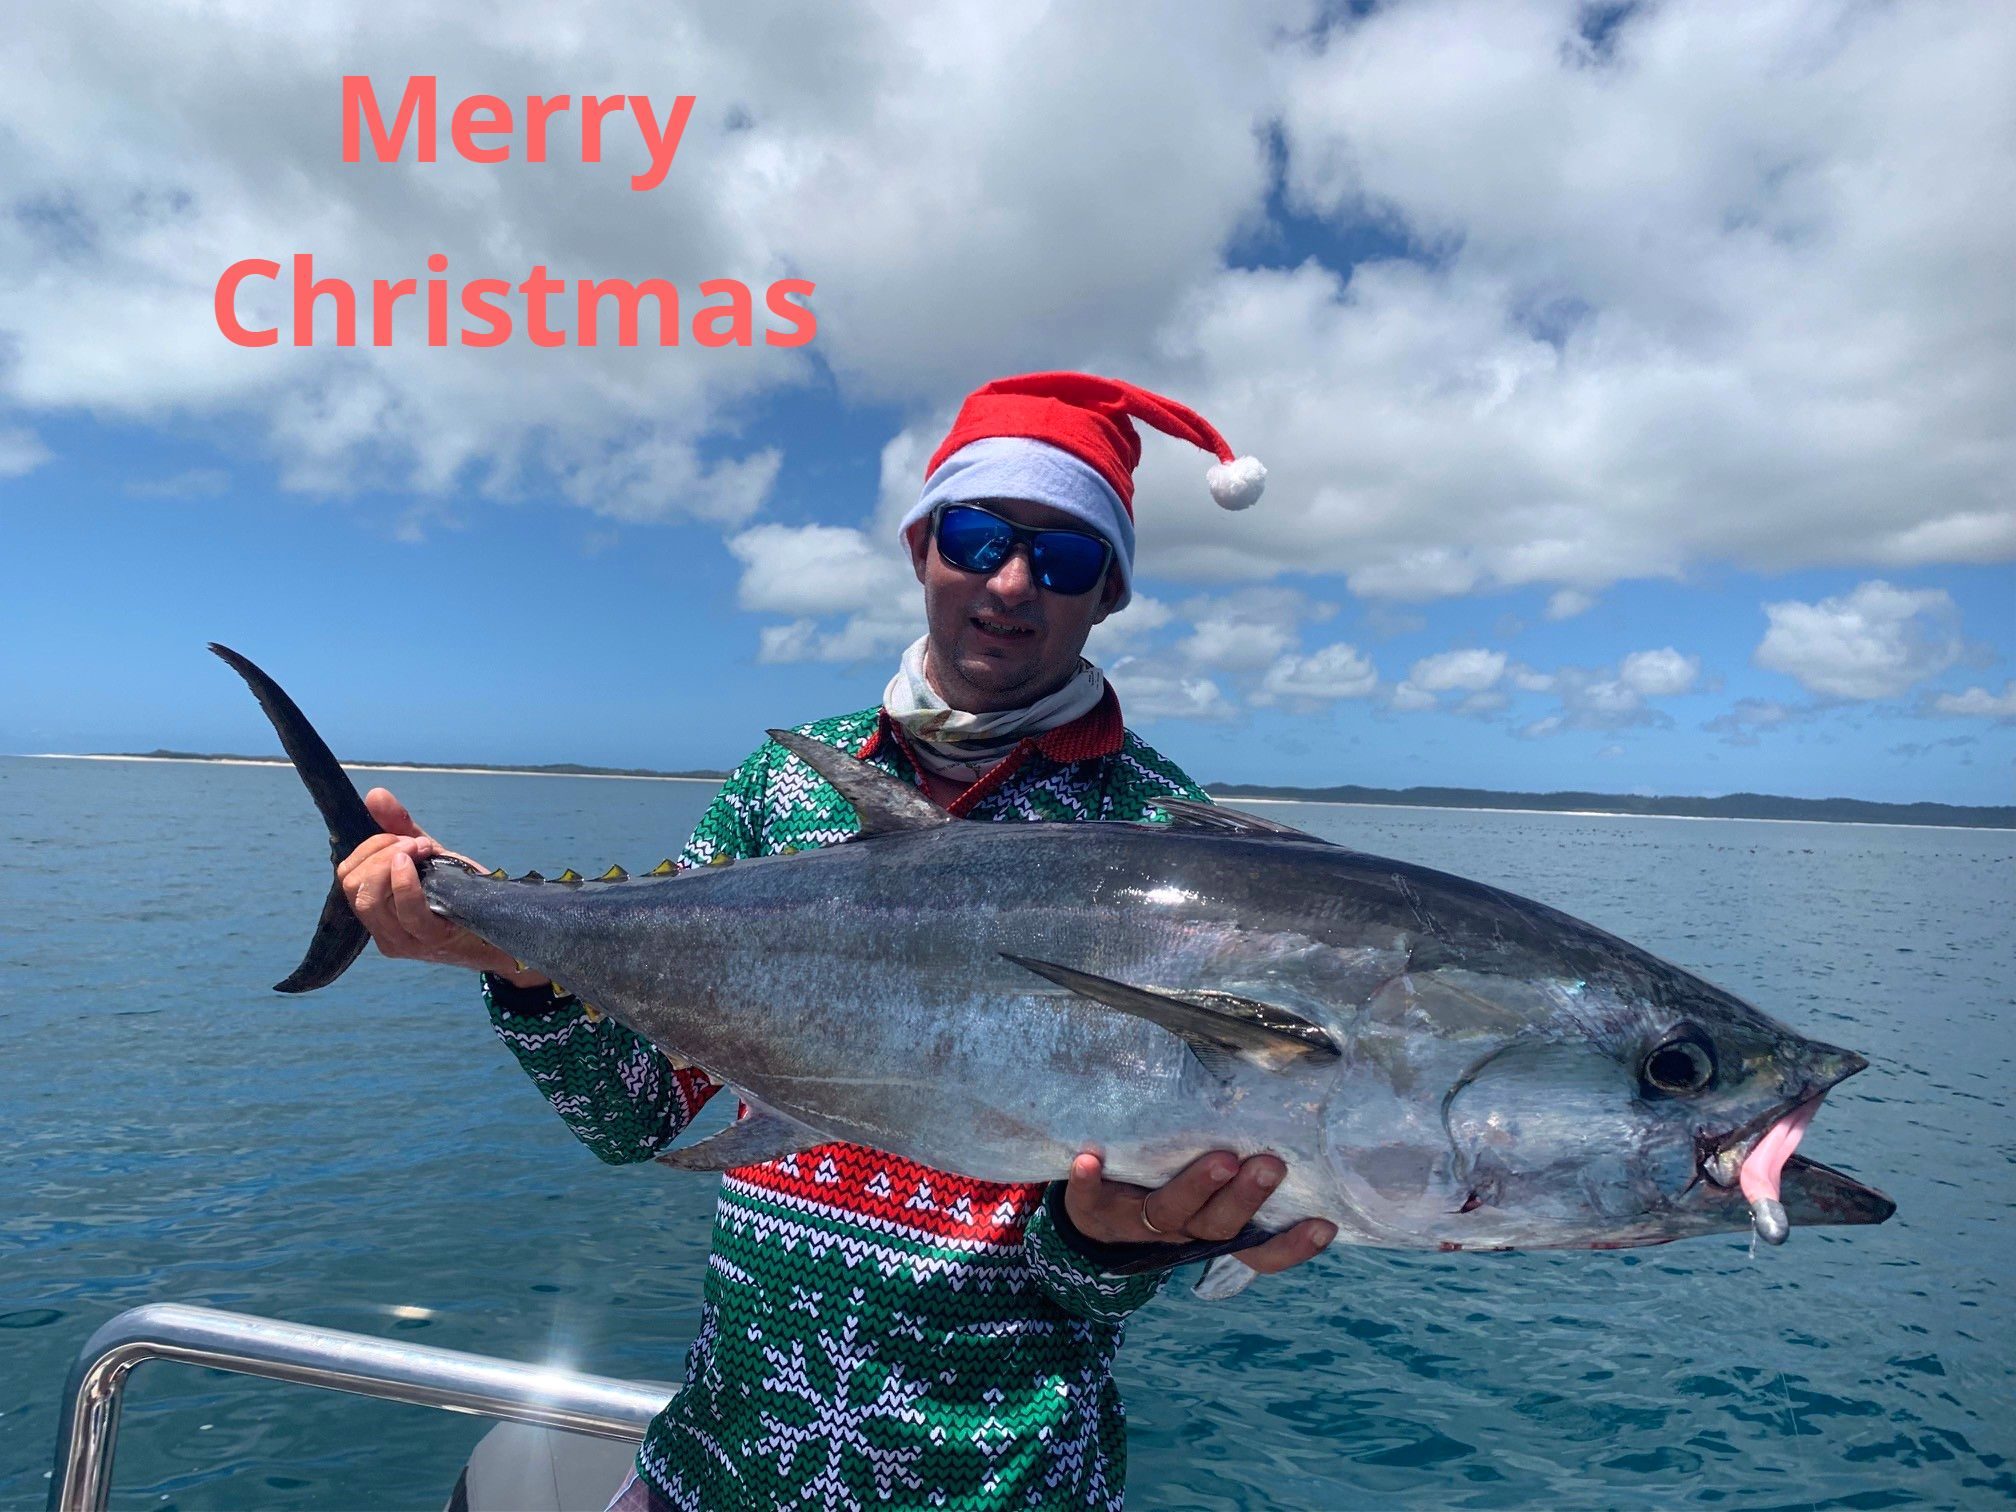 Chozz embracing the Christmas spirit, all the best and Merry Christmas from the team.